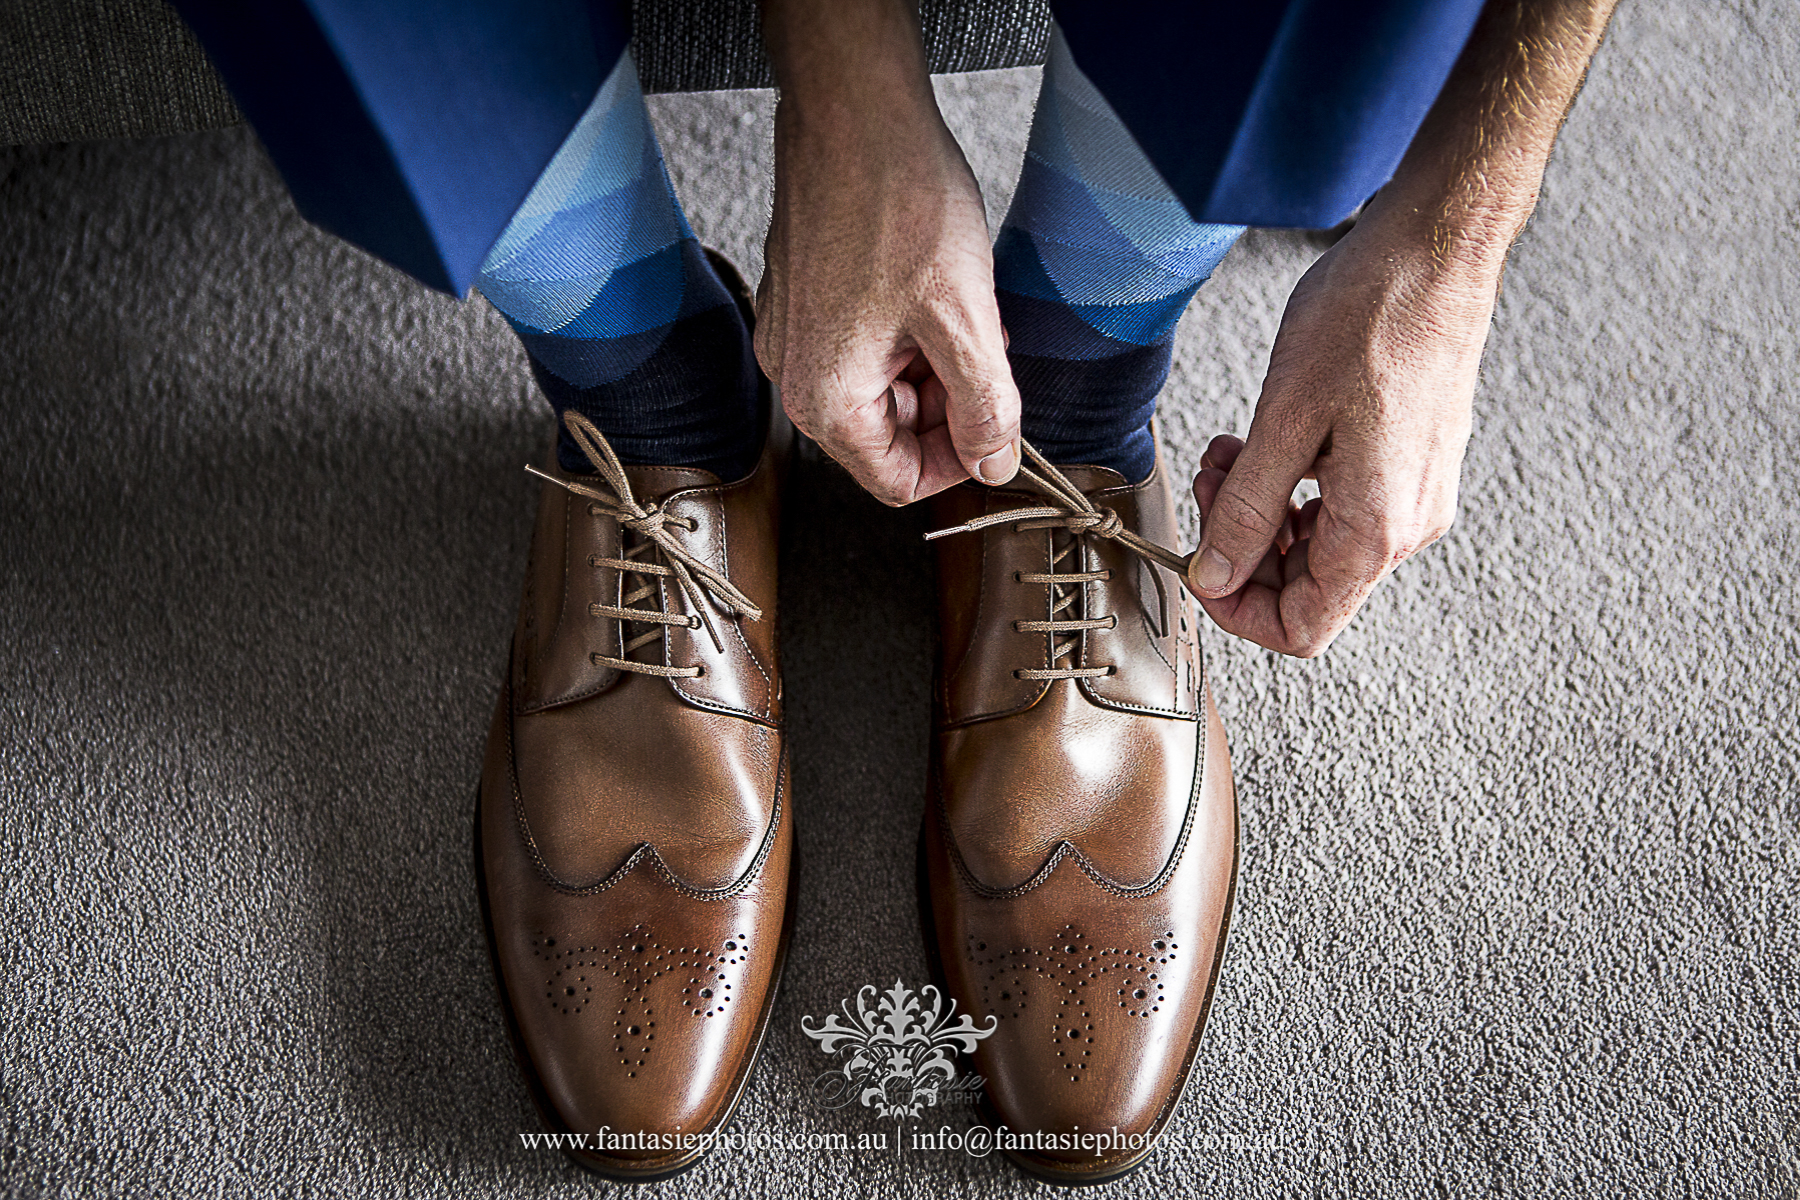 New Stylish Wedding Shoes Groom idea | Fantasie Photography